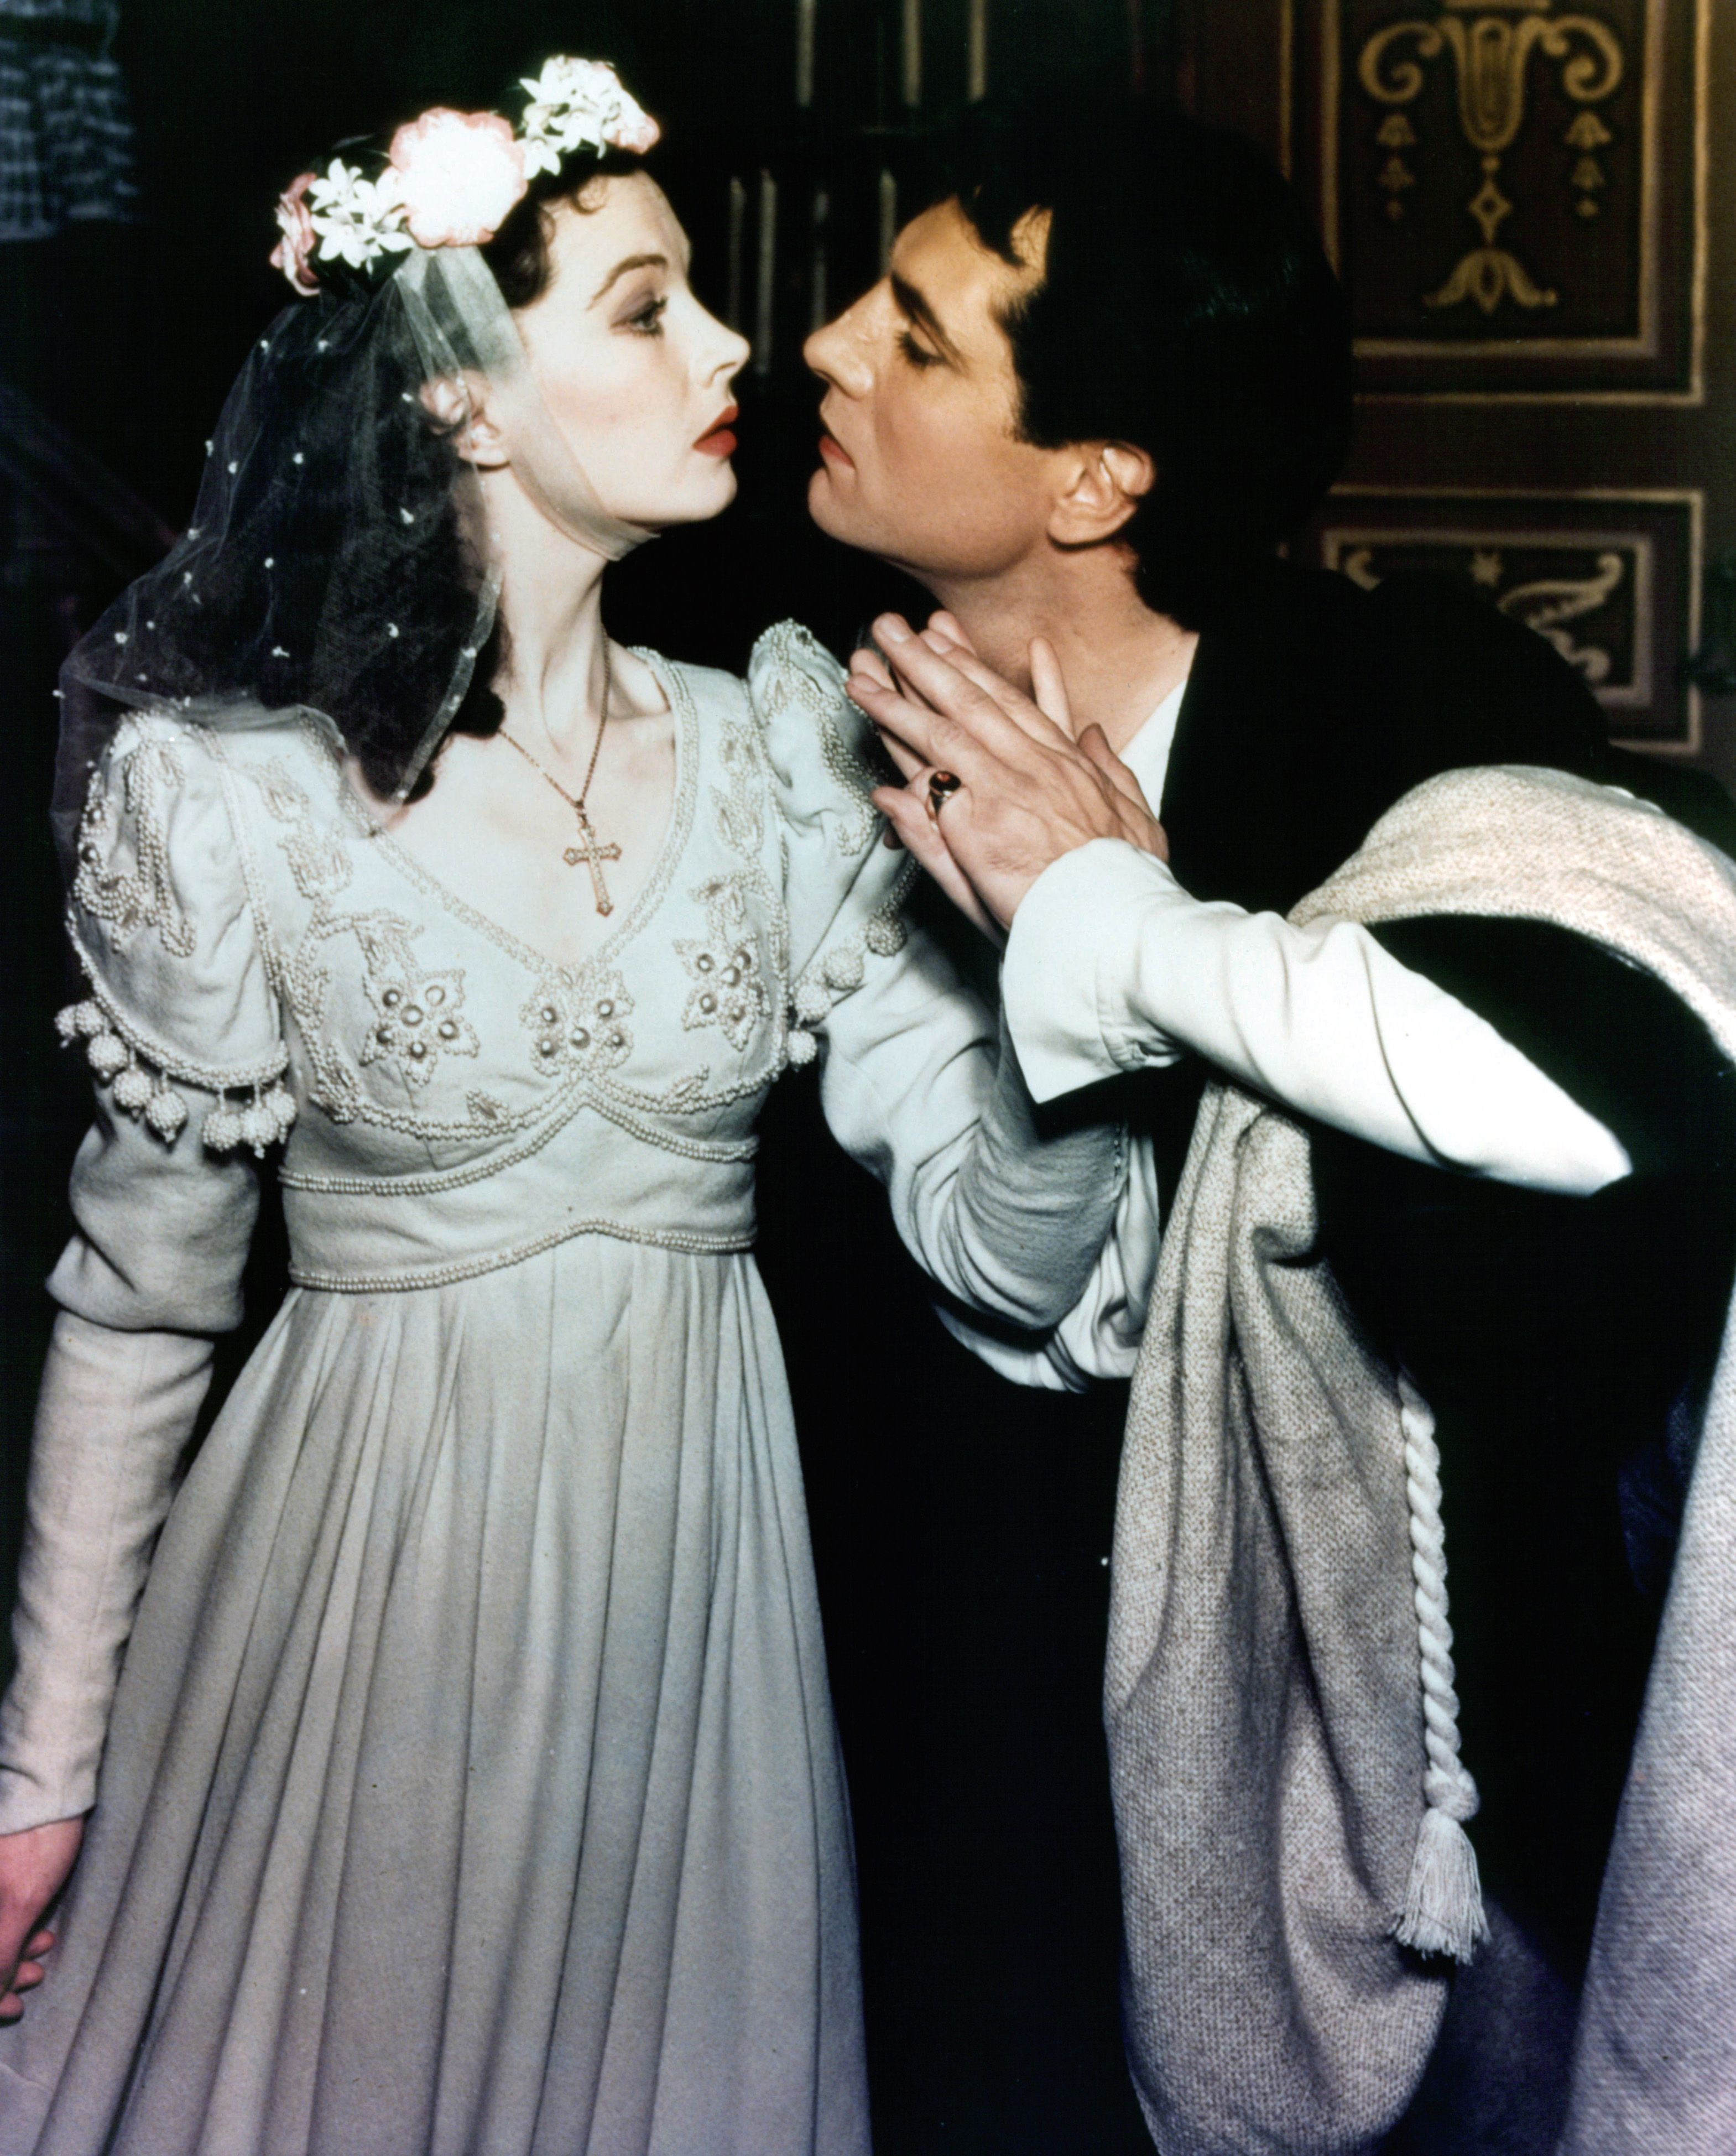 Vivien Leigh and Laurence Olivier in the 1940 stage production of 'Romeo and Juliet' | Source: Getty Images